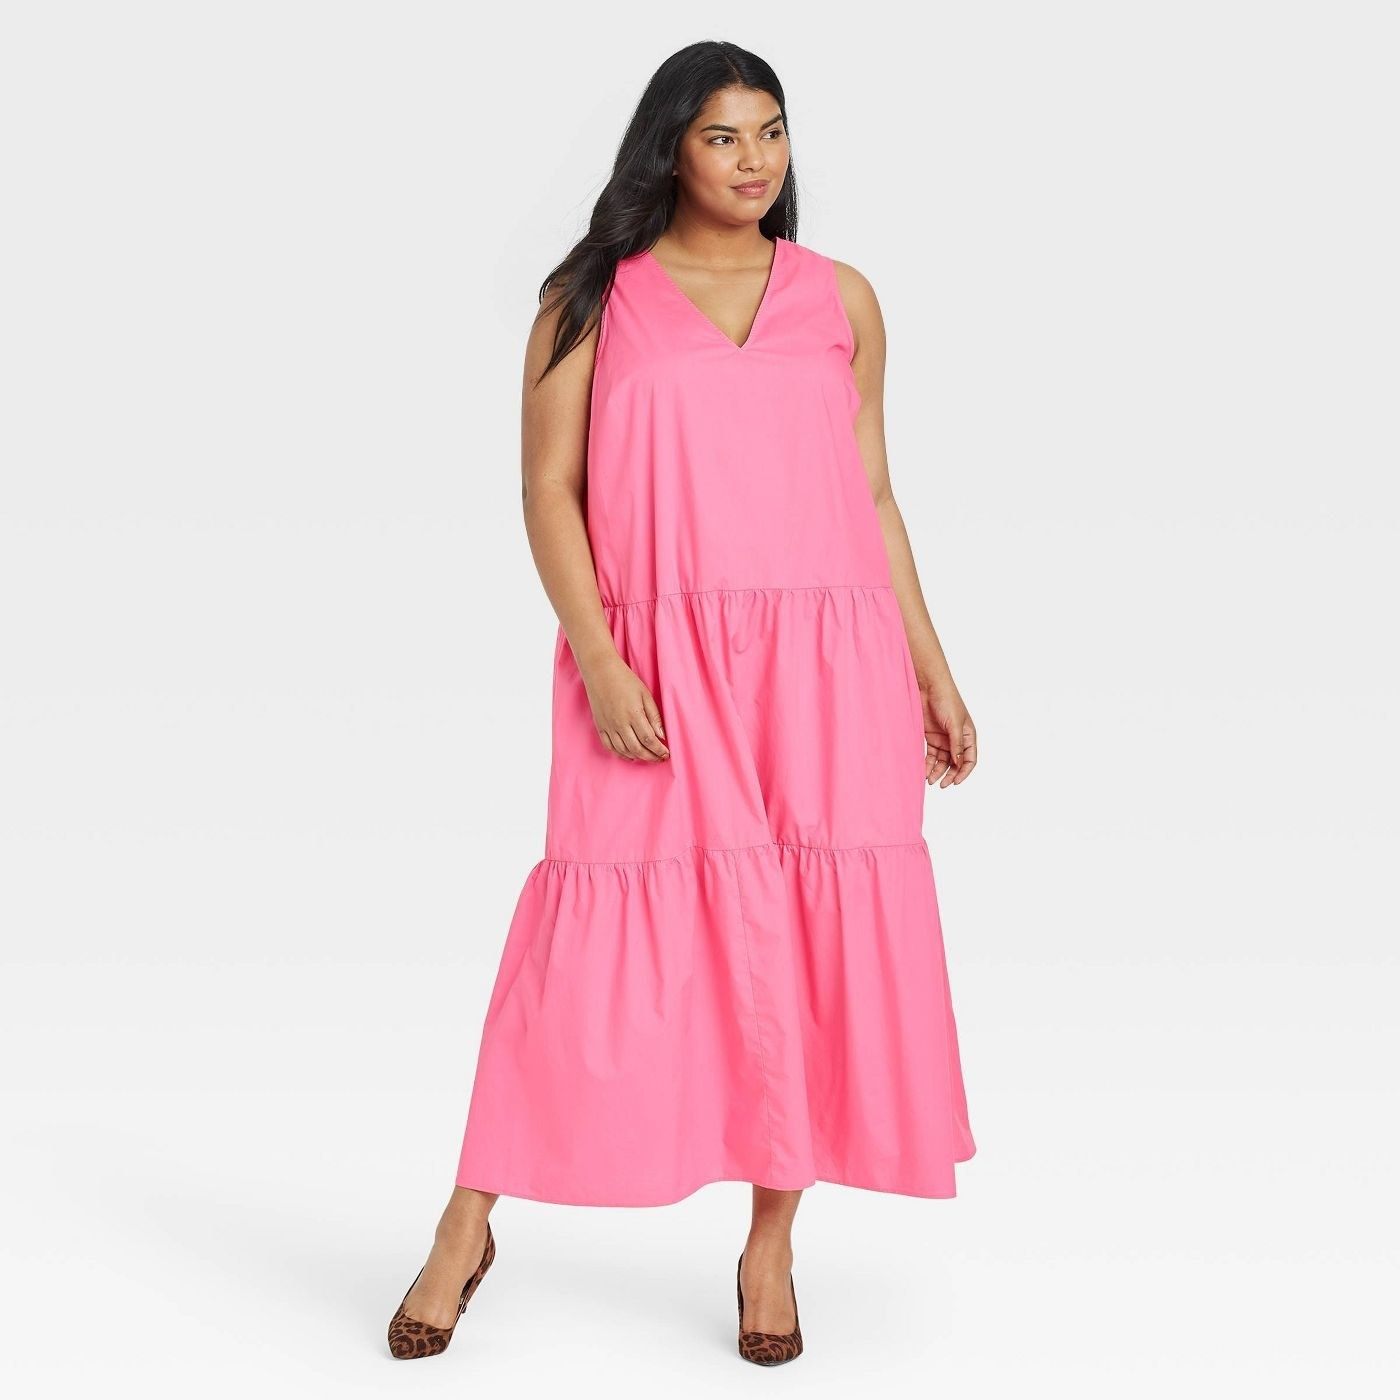 Model wearing pink maxi dress with tiered skirt